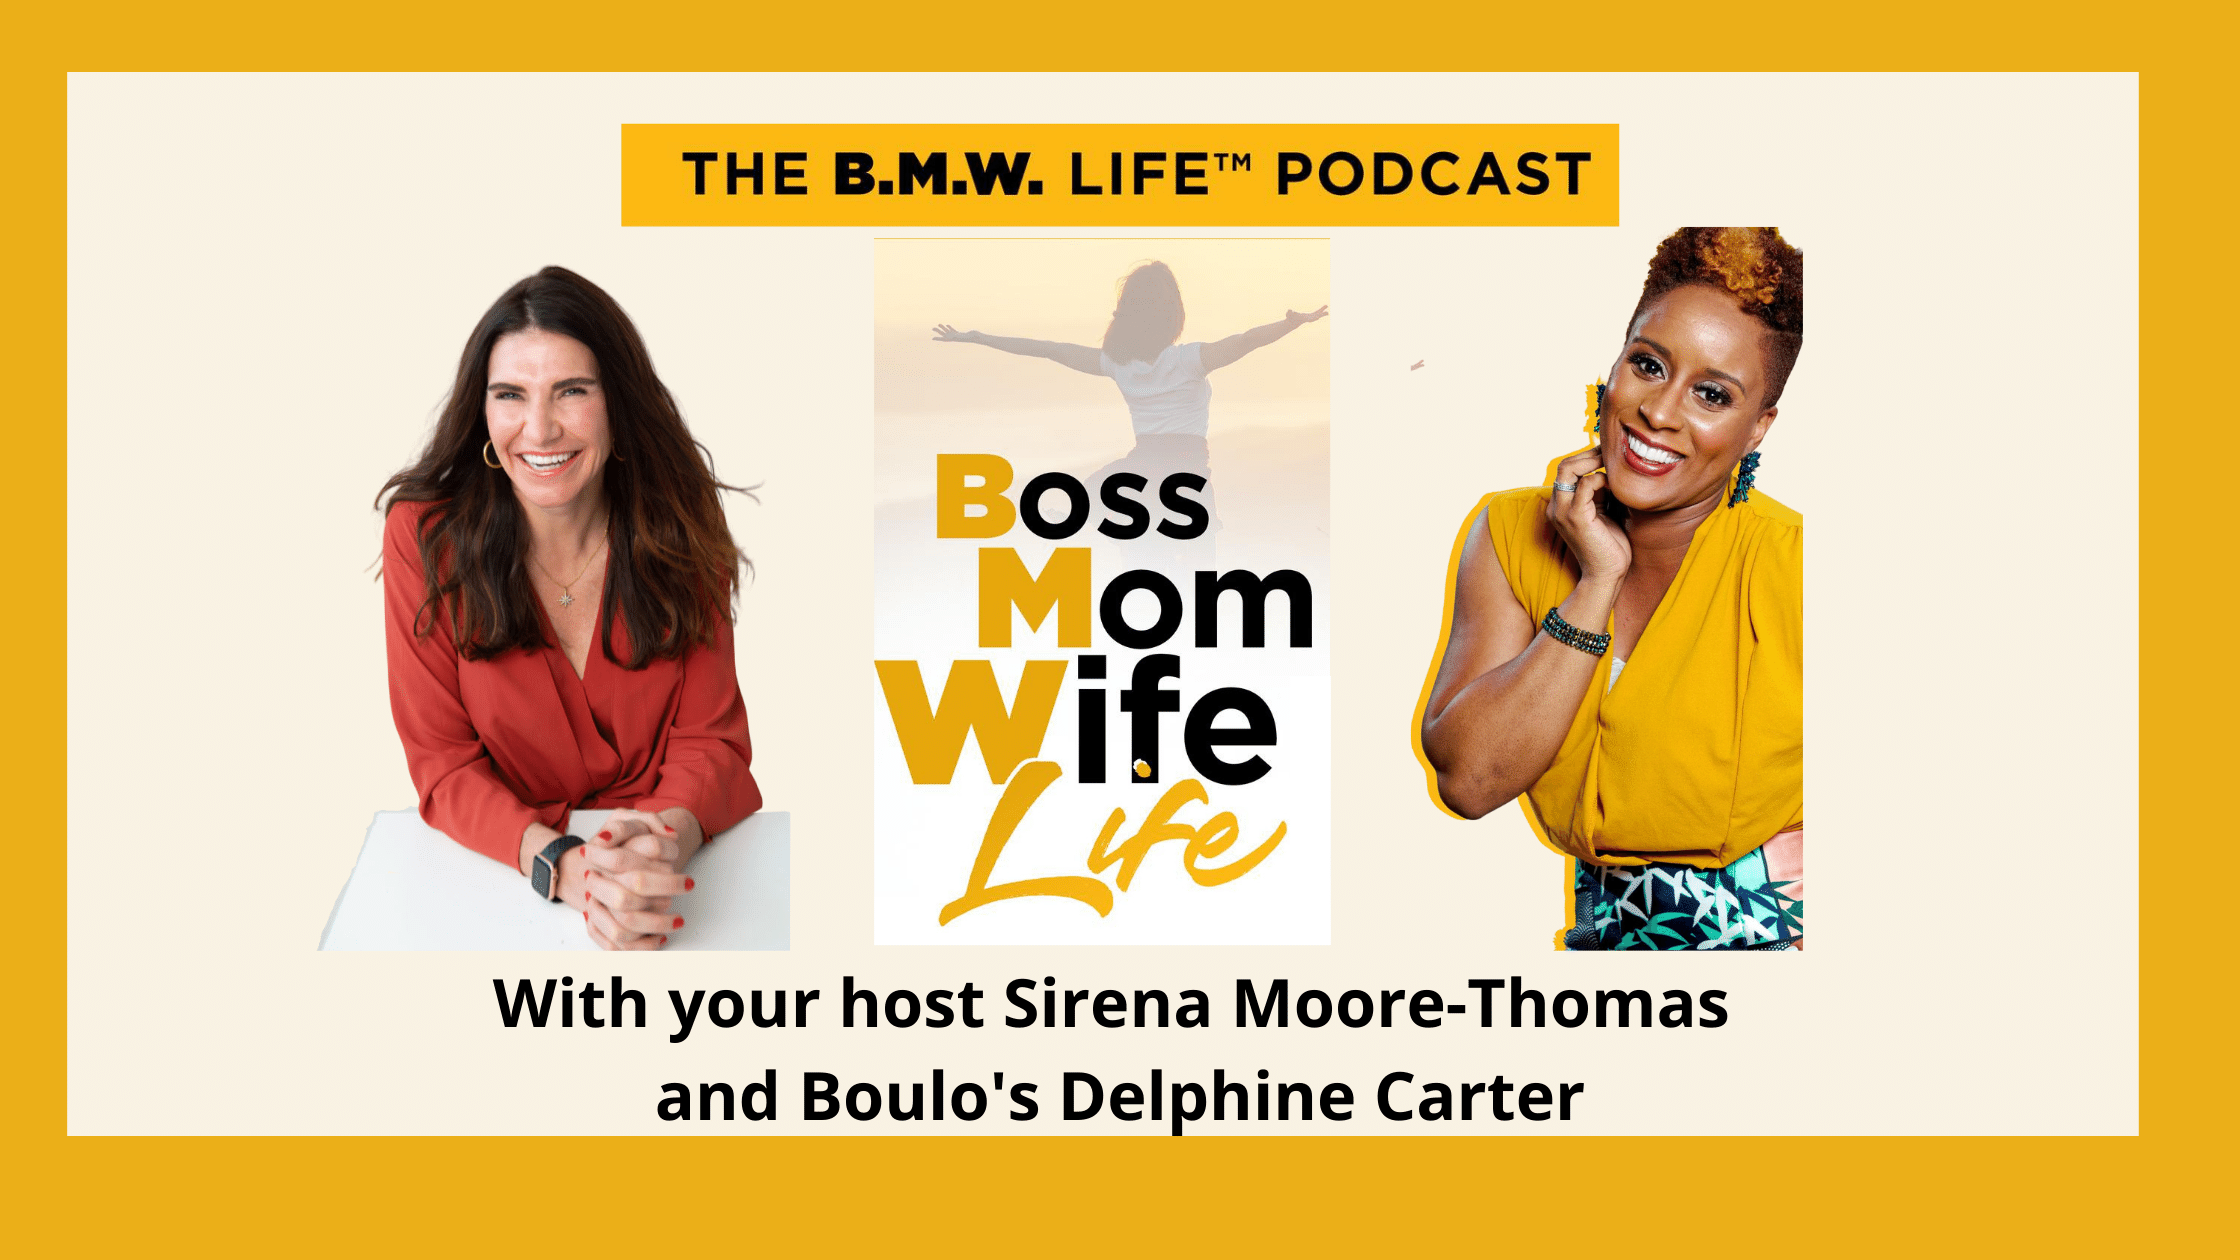 Women in the Workforce: Career and Kiddos coverwithout Compromise episode onB.M.W Boss Mom Wife Life podcast logo and photos of host Sirena Moore-Thomas and Boulo's Delphine Carter